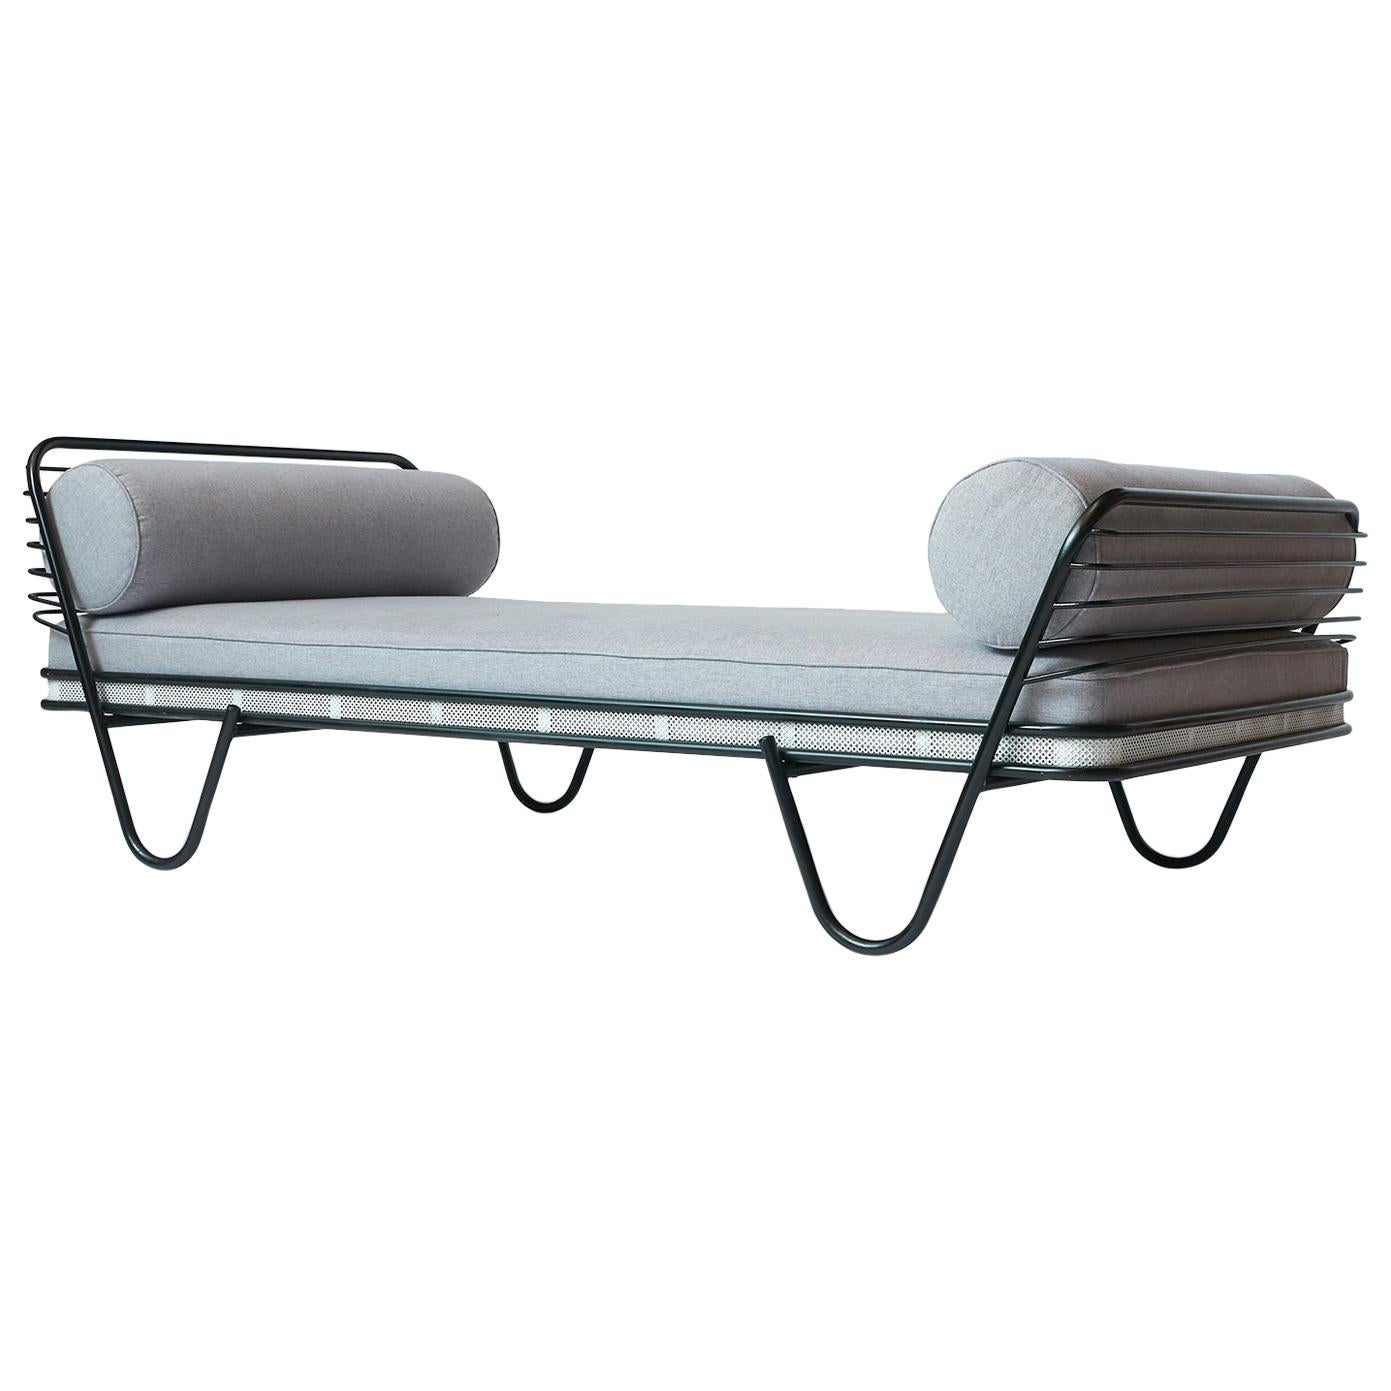 'Kyoto' Daybed by Mathieu Mategot